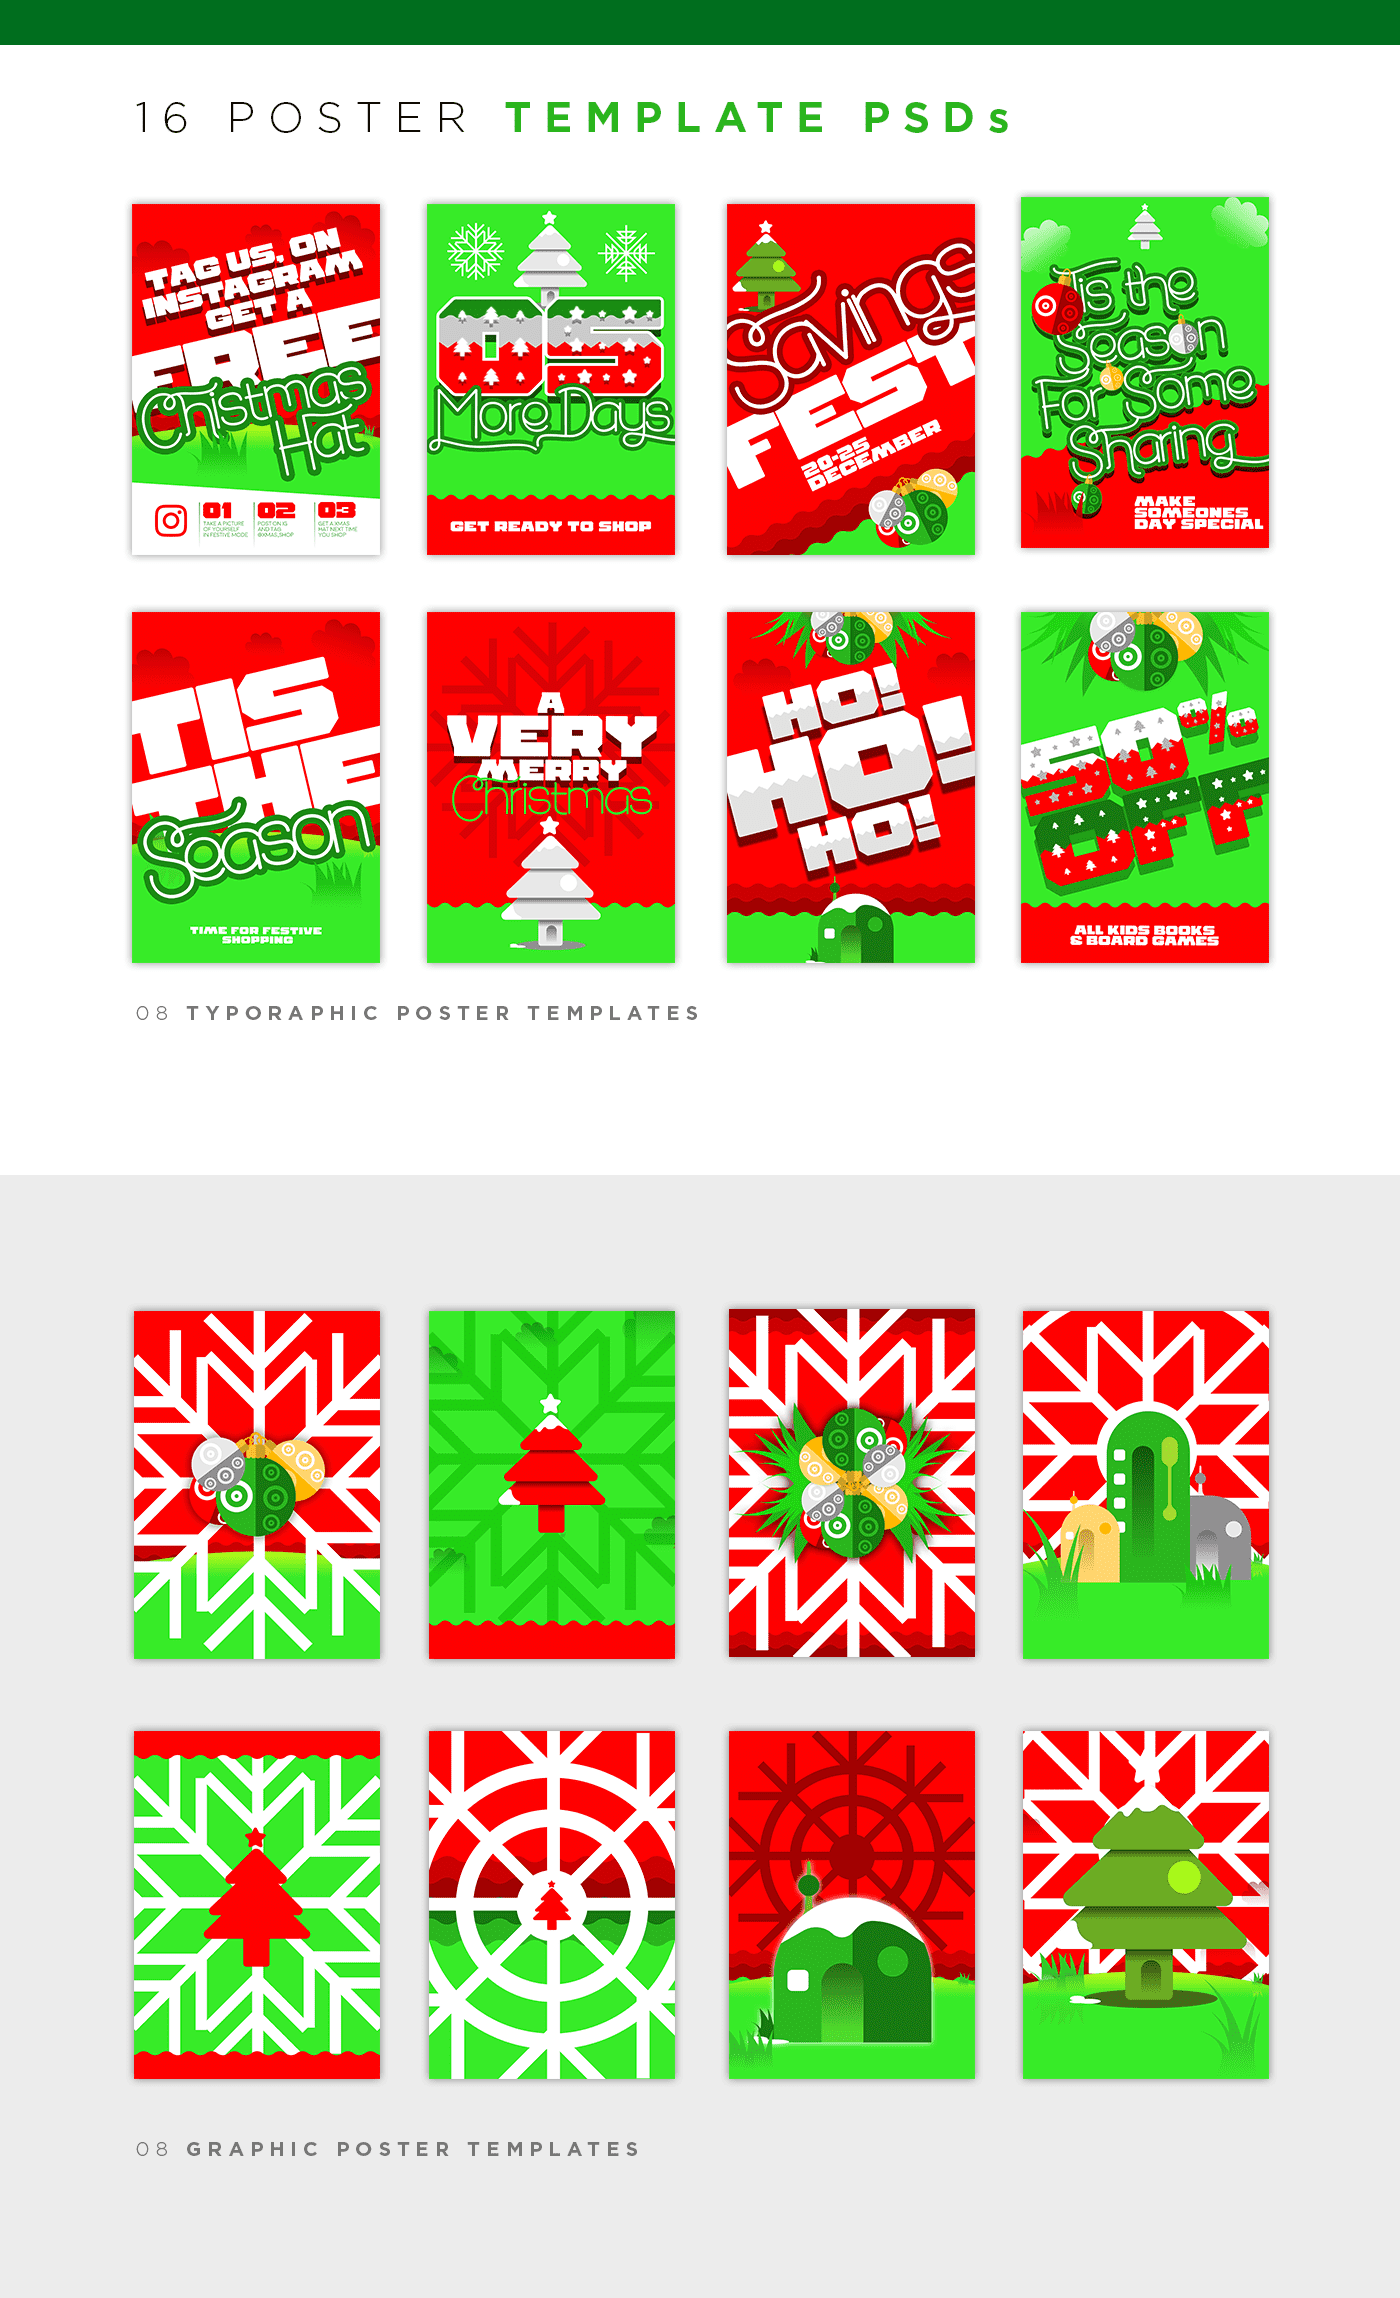 Xmas Meadow Collection - $17 ONLY - 04